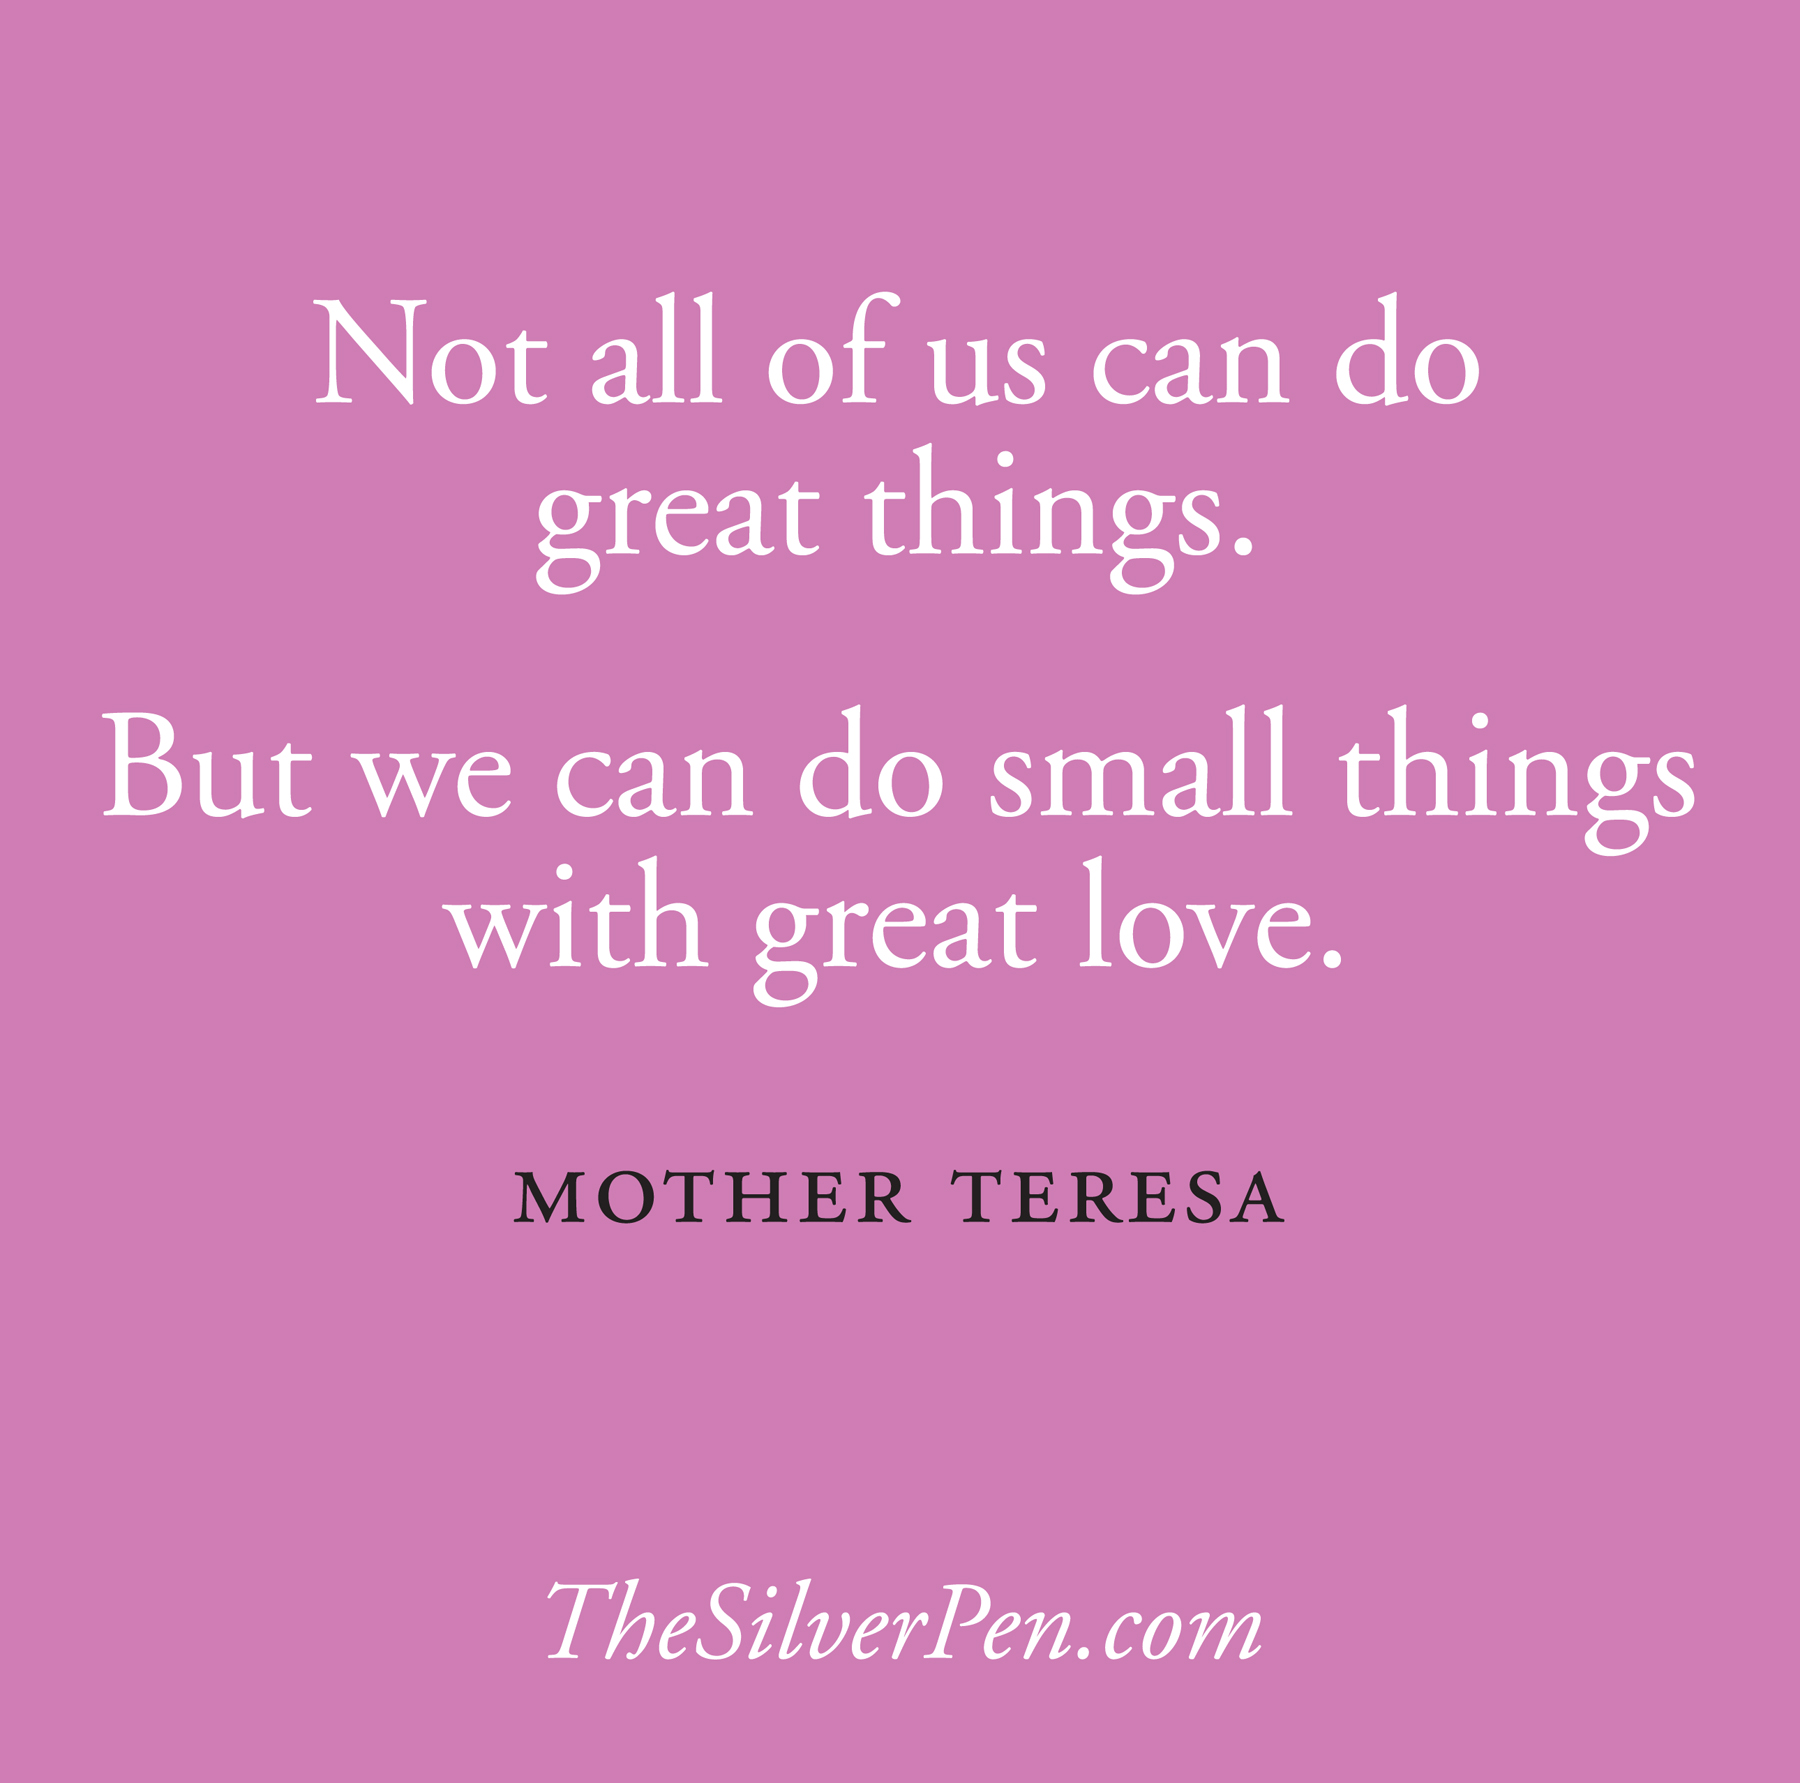 Inspirational Mom Quotes: Great Love Mother Teresa Quotes. QuotesGram